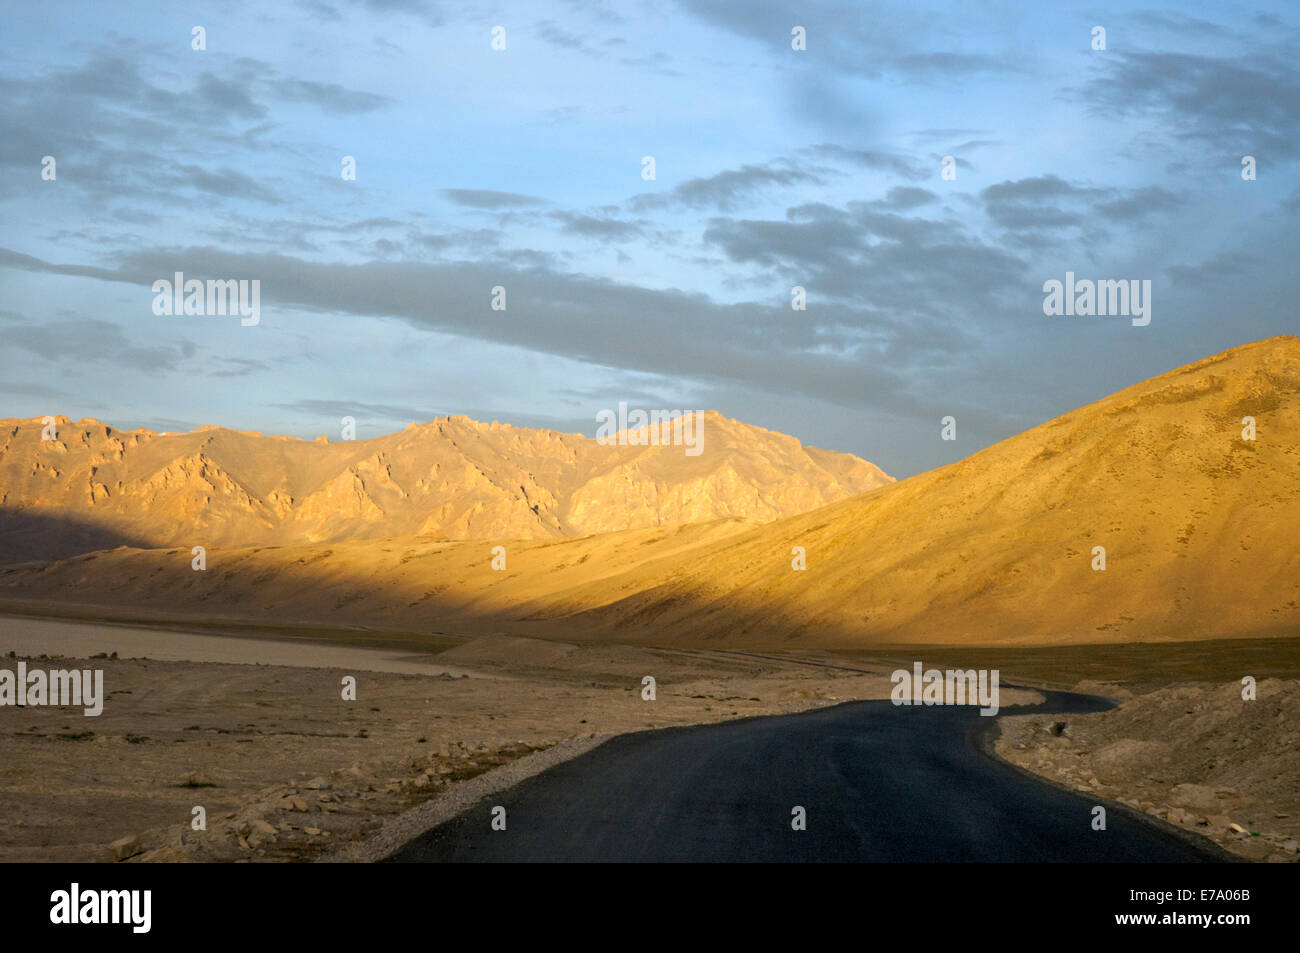 Early morning on the Leh to Manali road, south of the Tanglang or Taglang La (pass), northern India - Stock Image